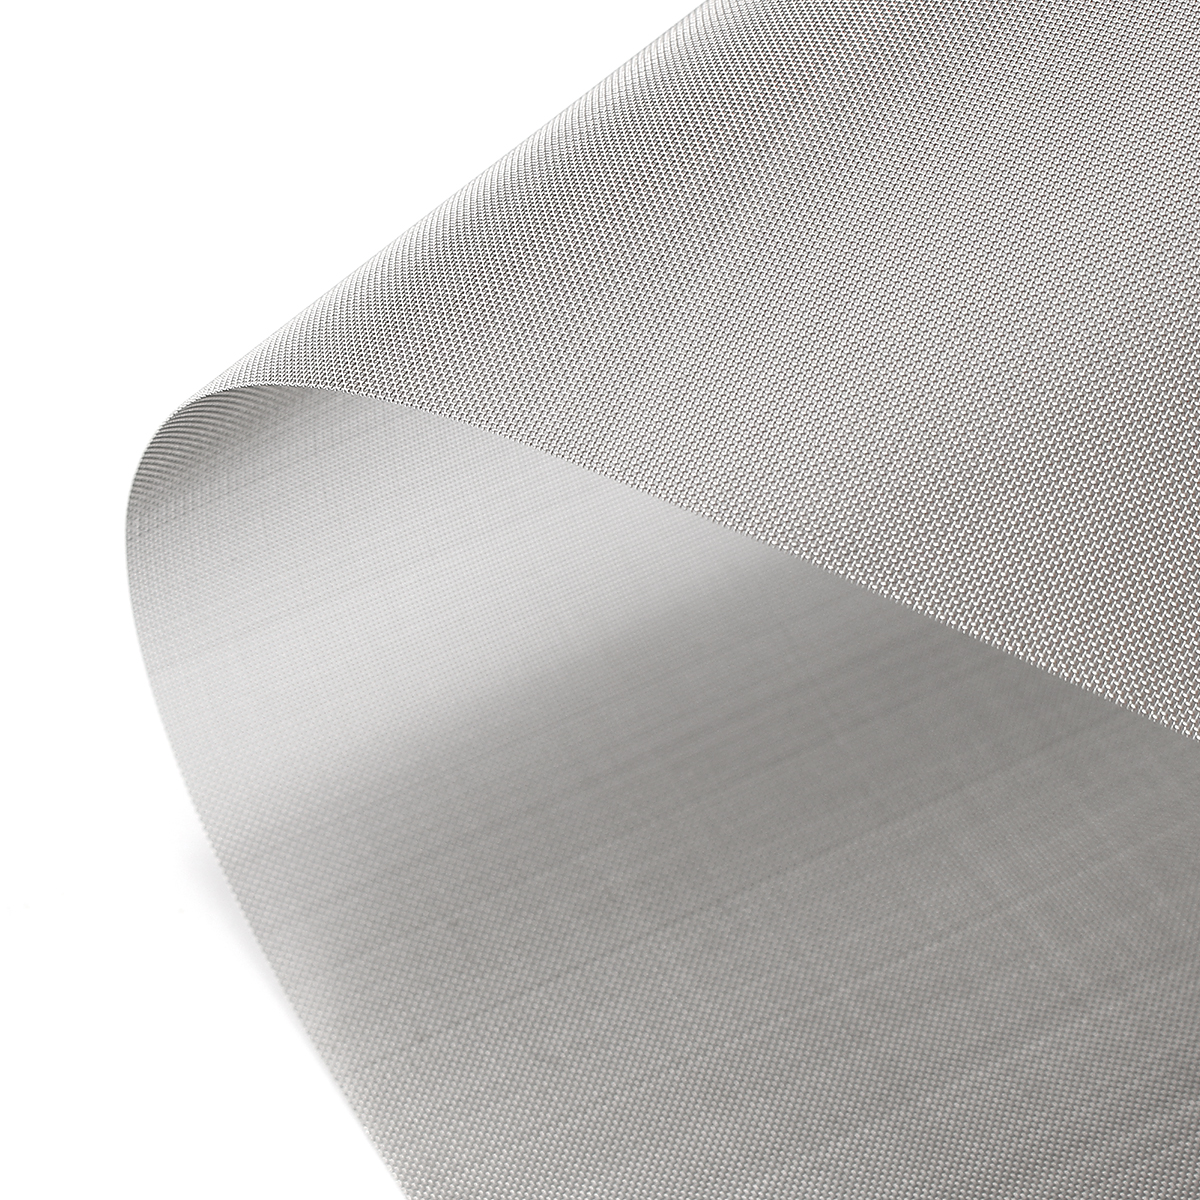 Metal Screen Material : Cm woven wire cloth screen stainless steel